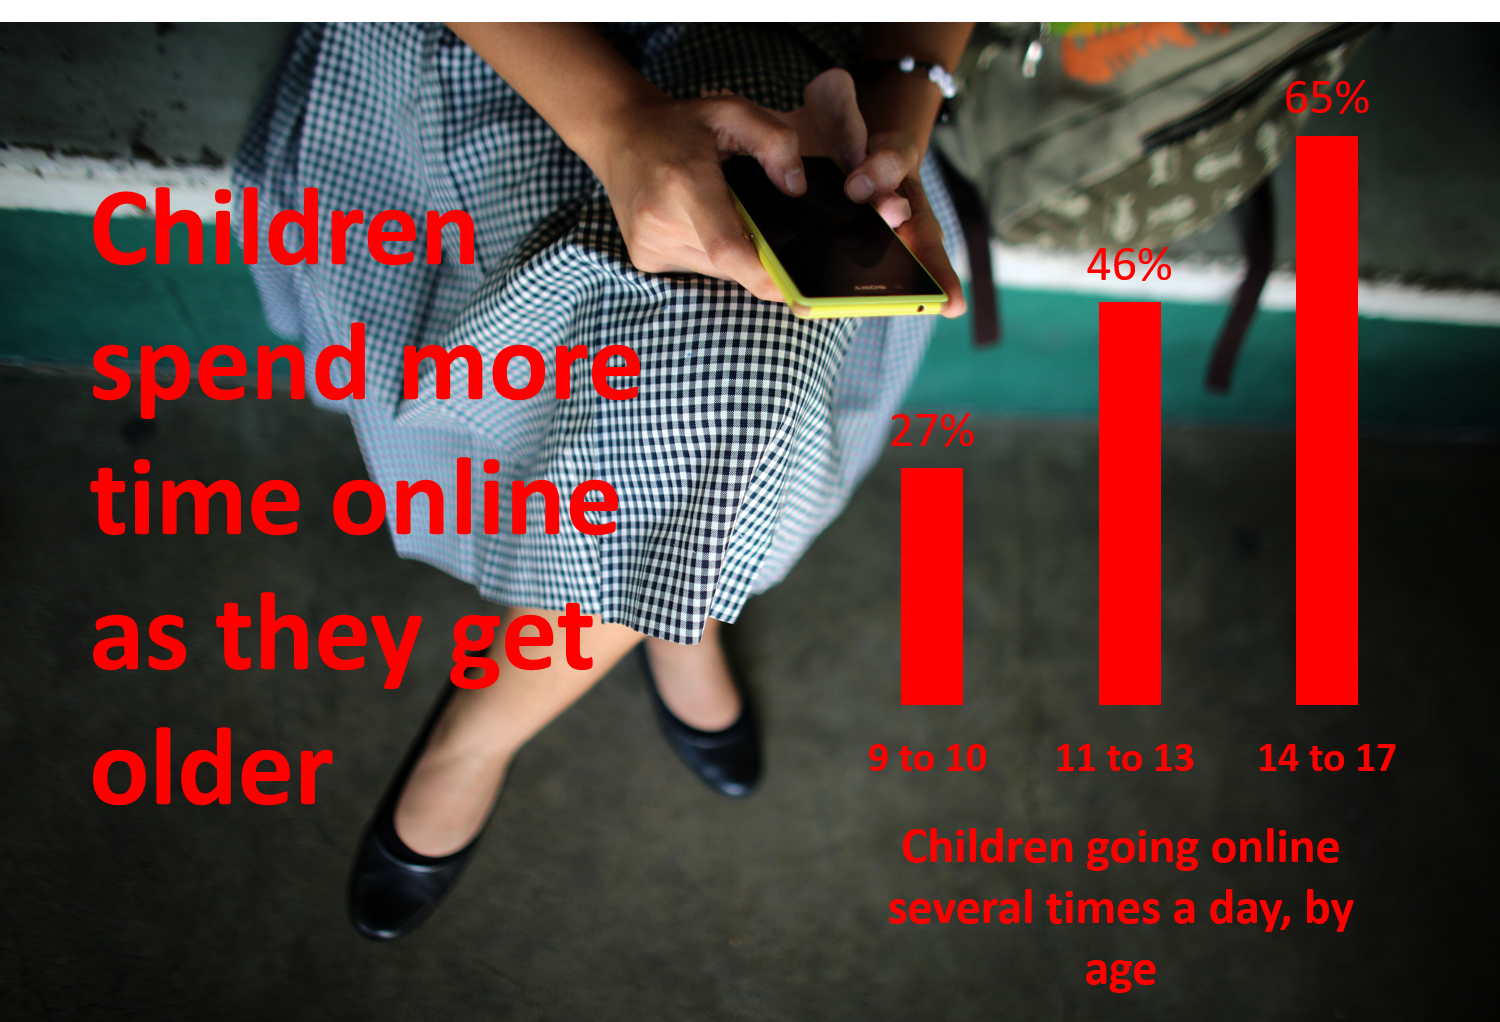 Chile: a third of children do not use the internet at school